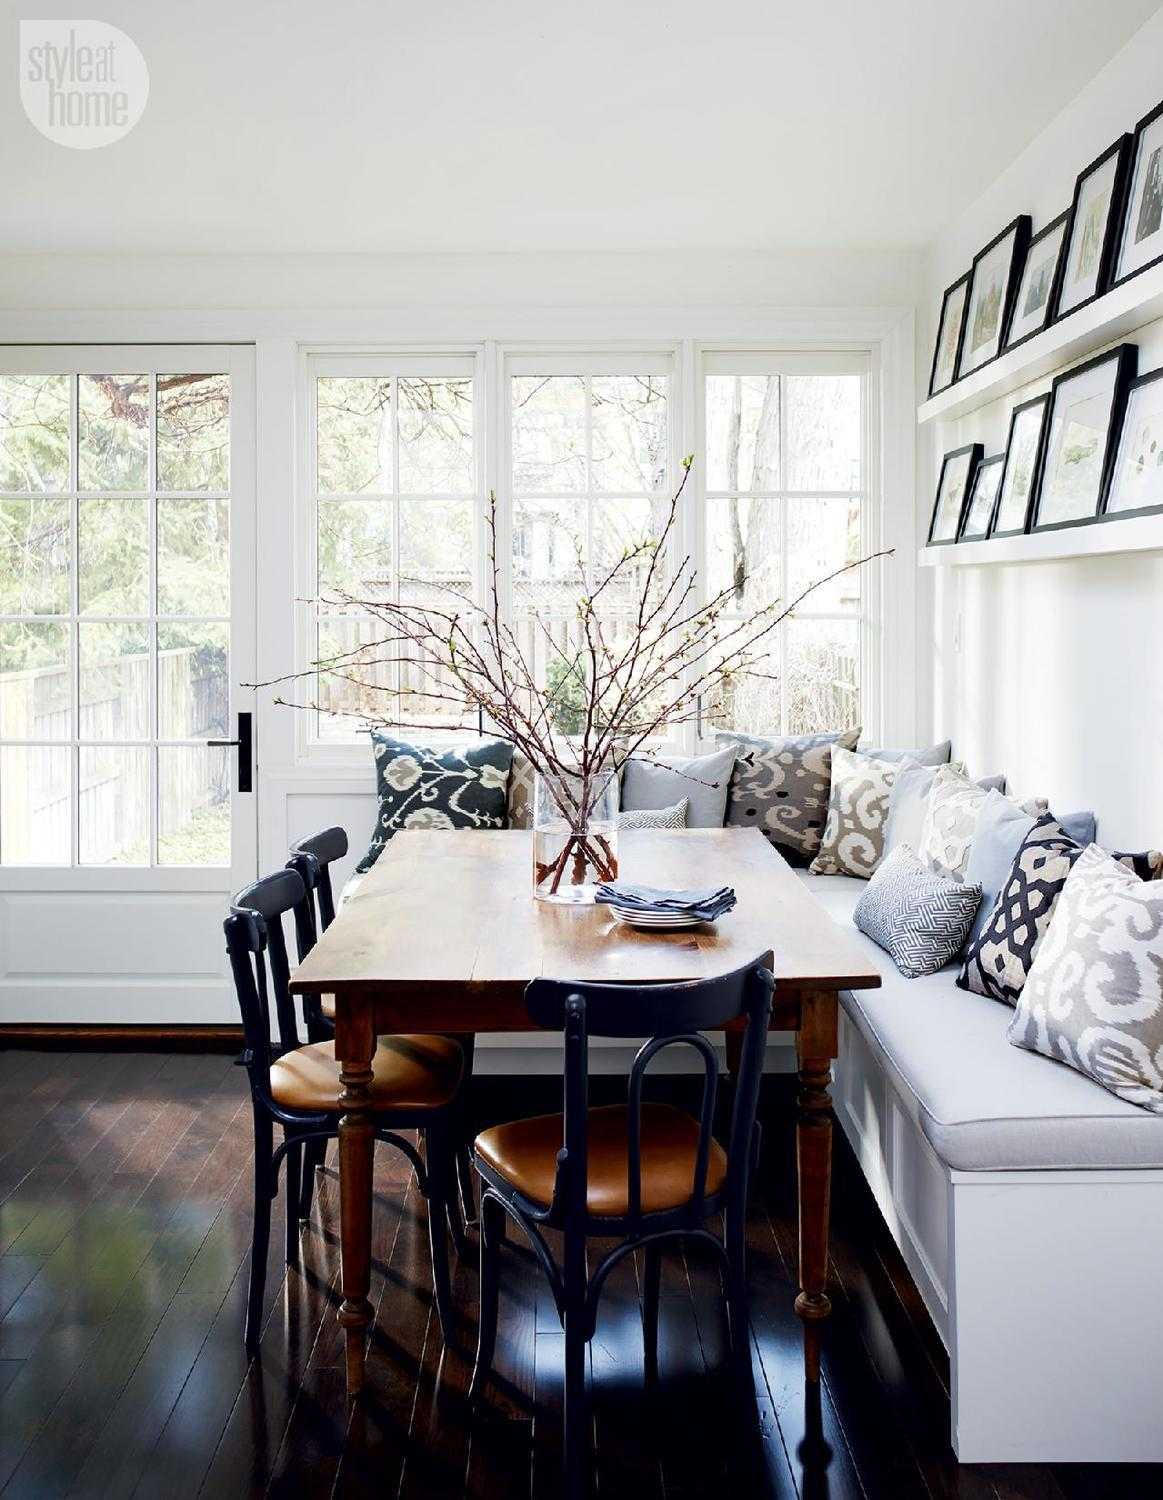 Kitchen banquette with cushions